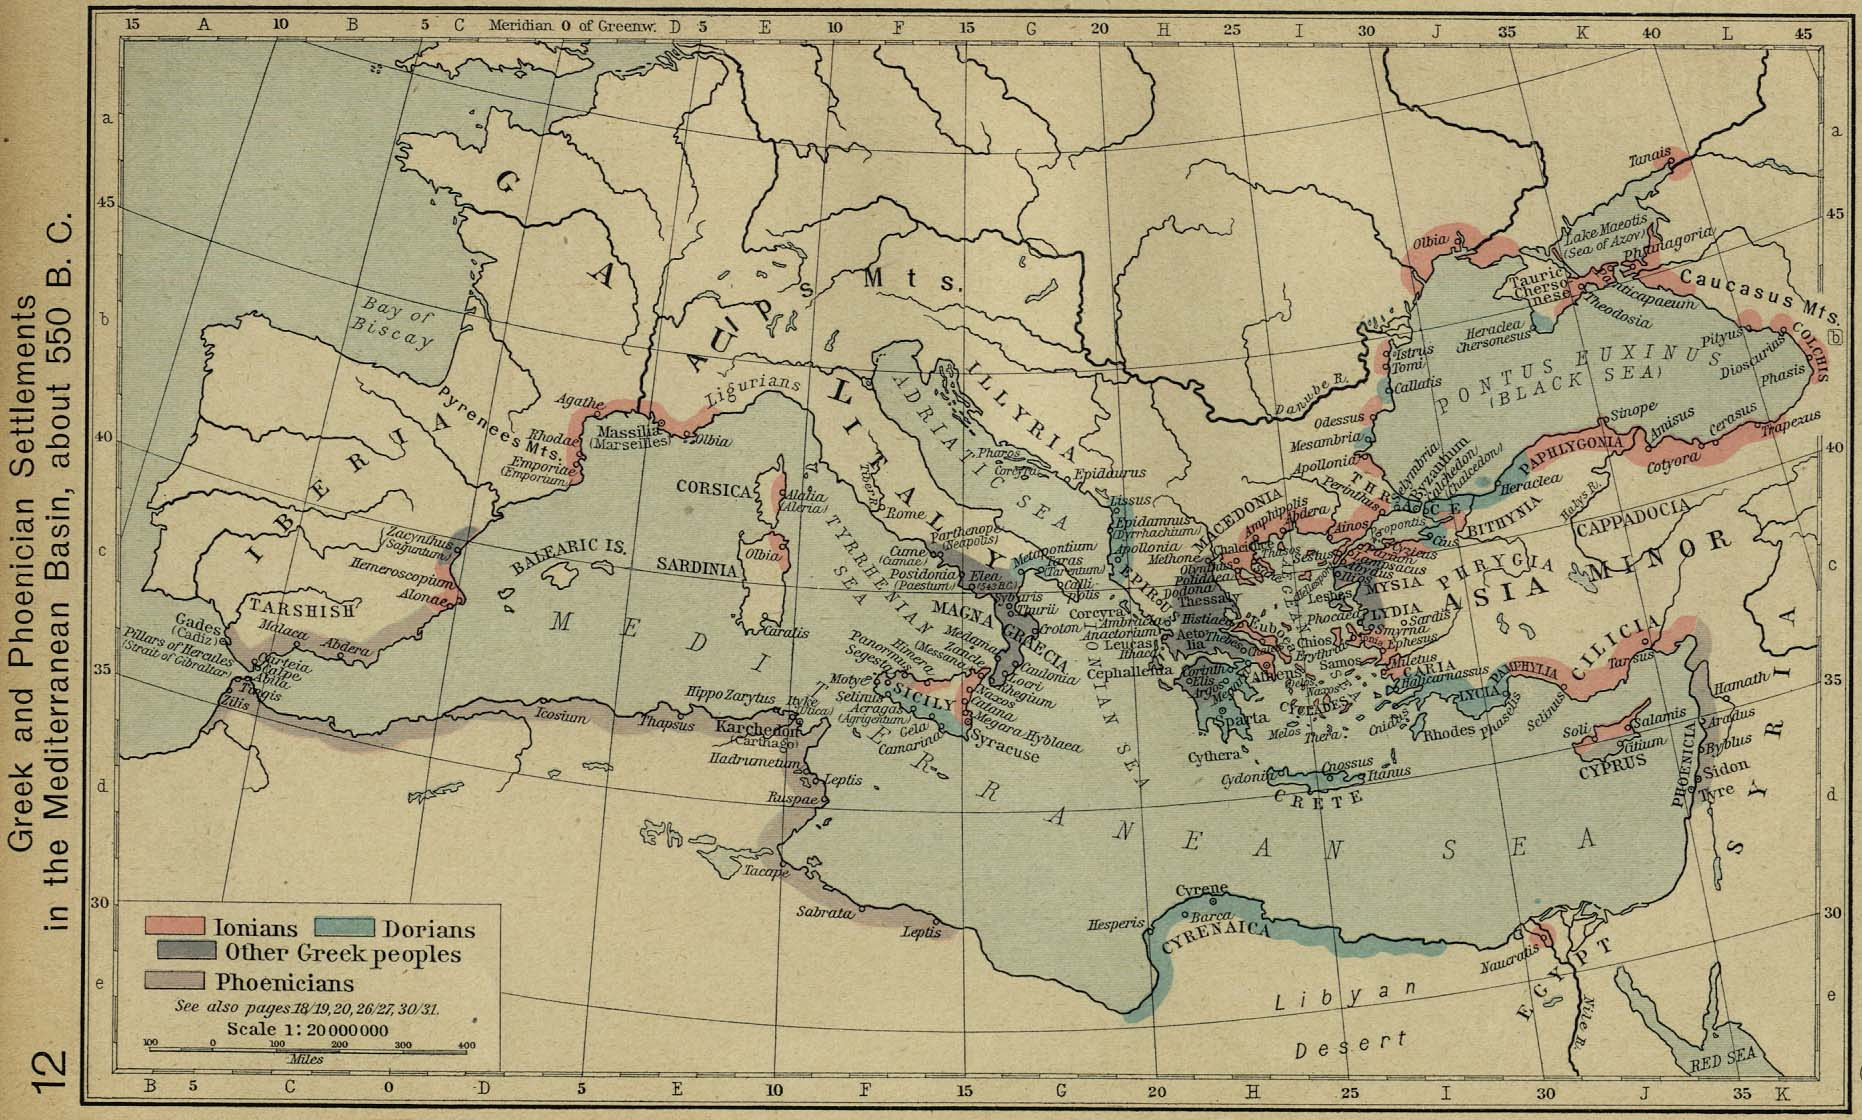 Map of the Mediterranean Sea 550 BC